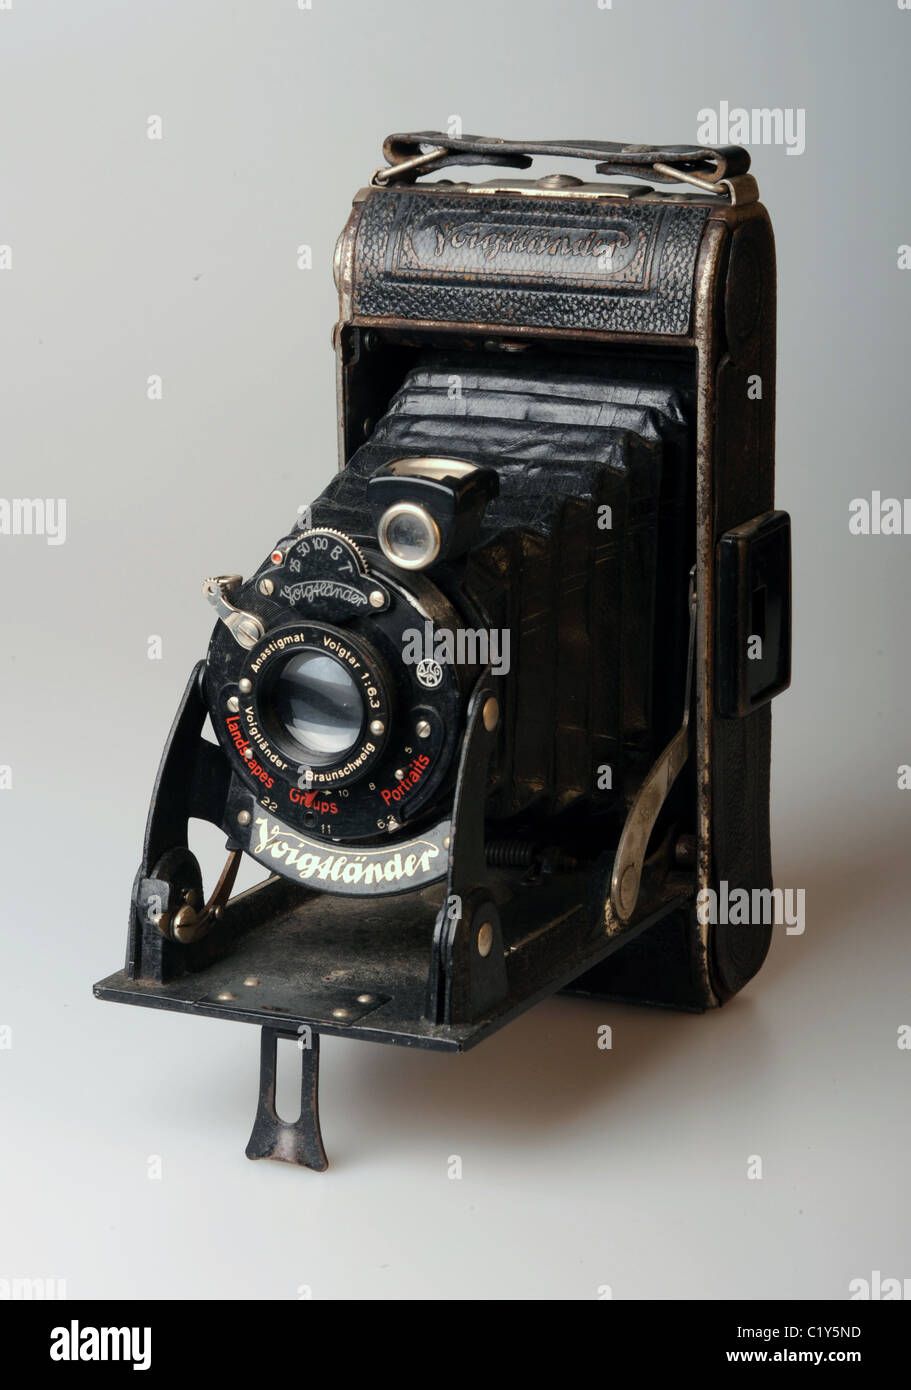 An old 1930s Voigtlander camera with bellows focus - Stock Image